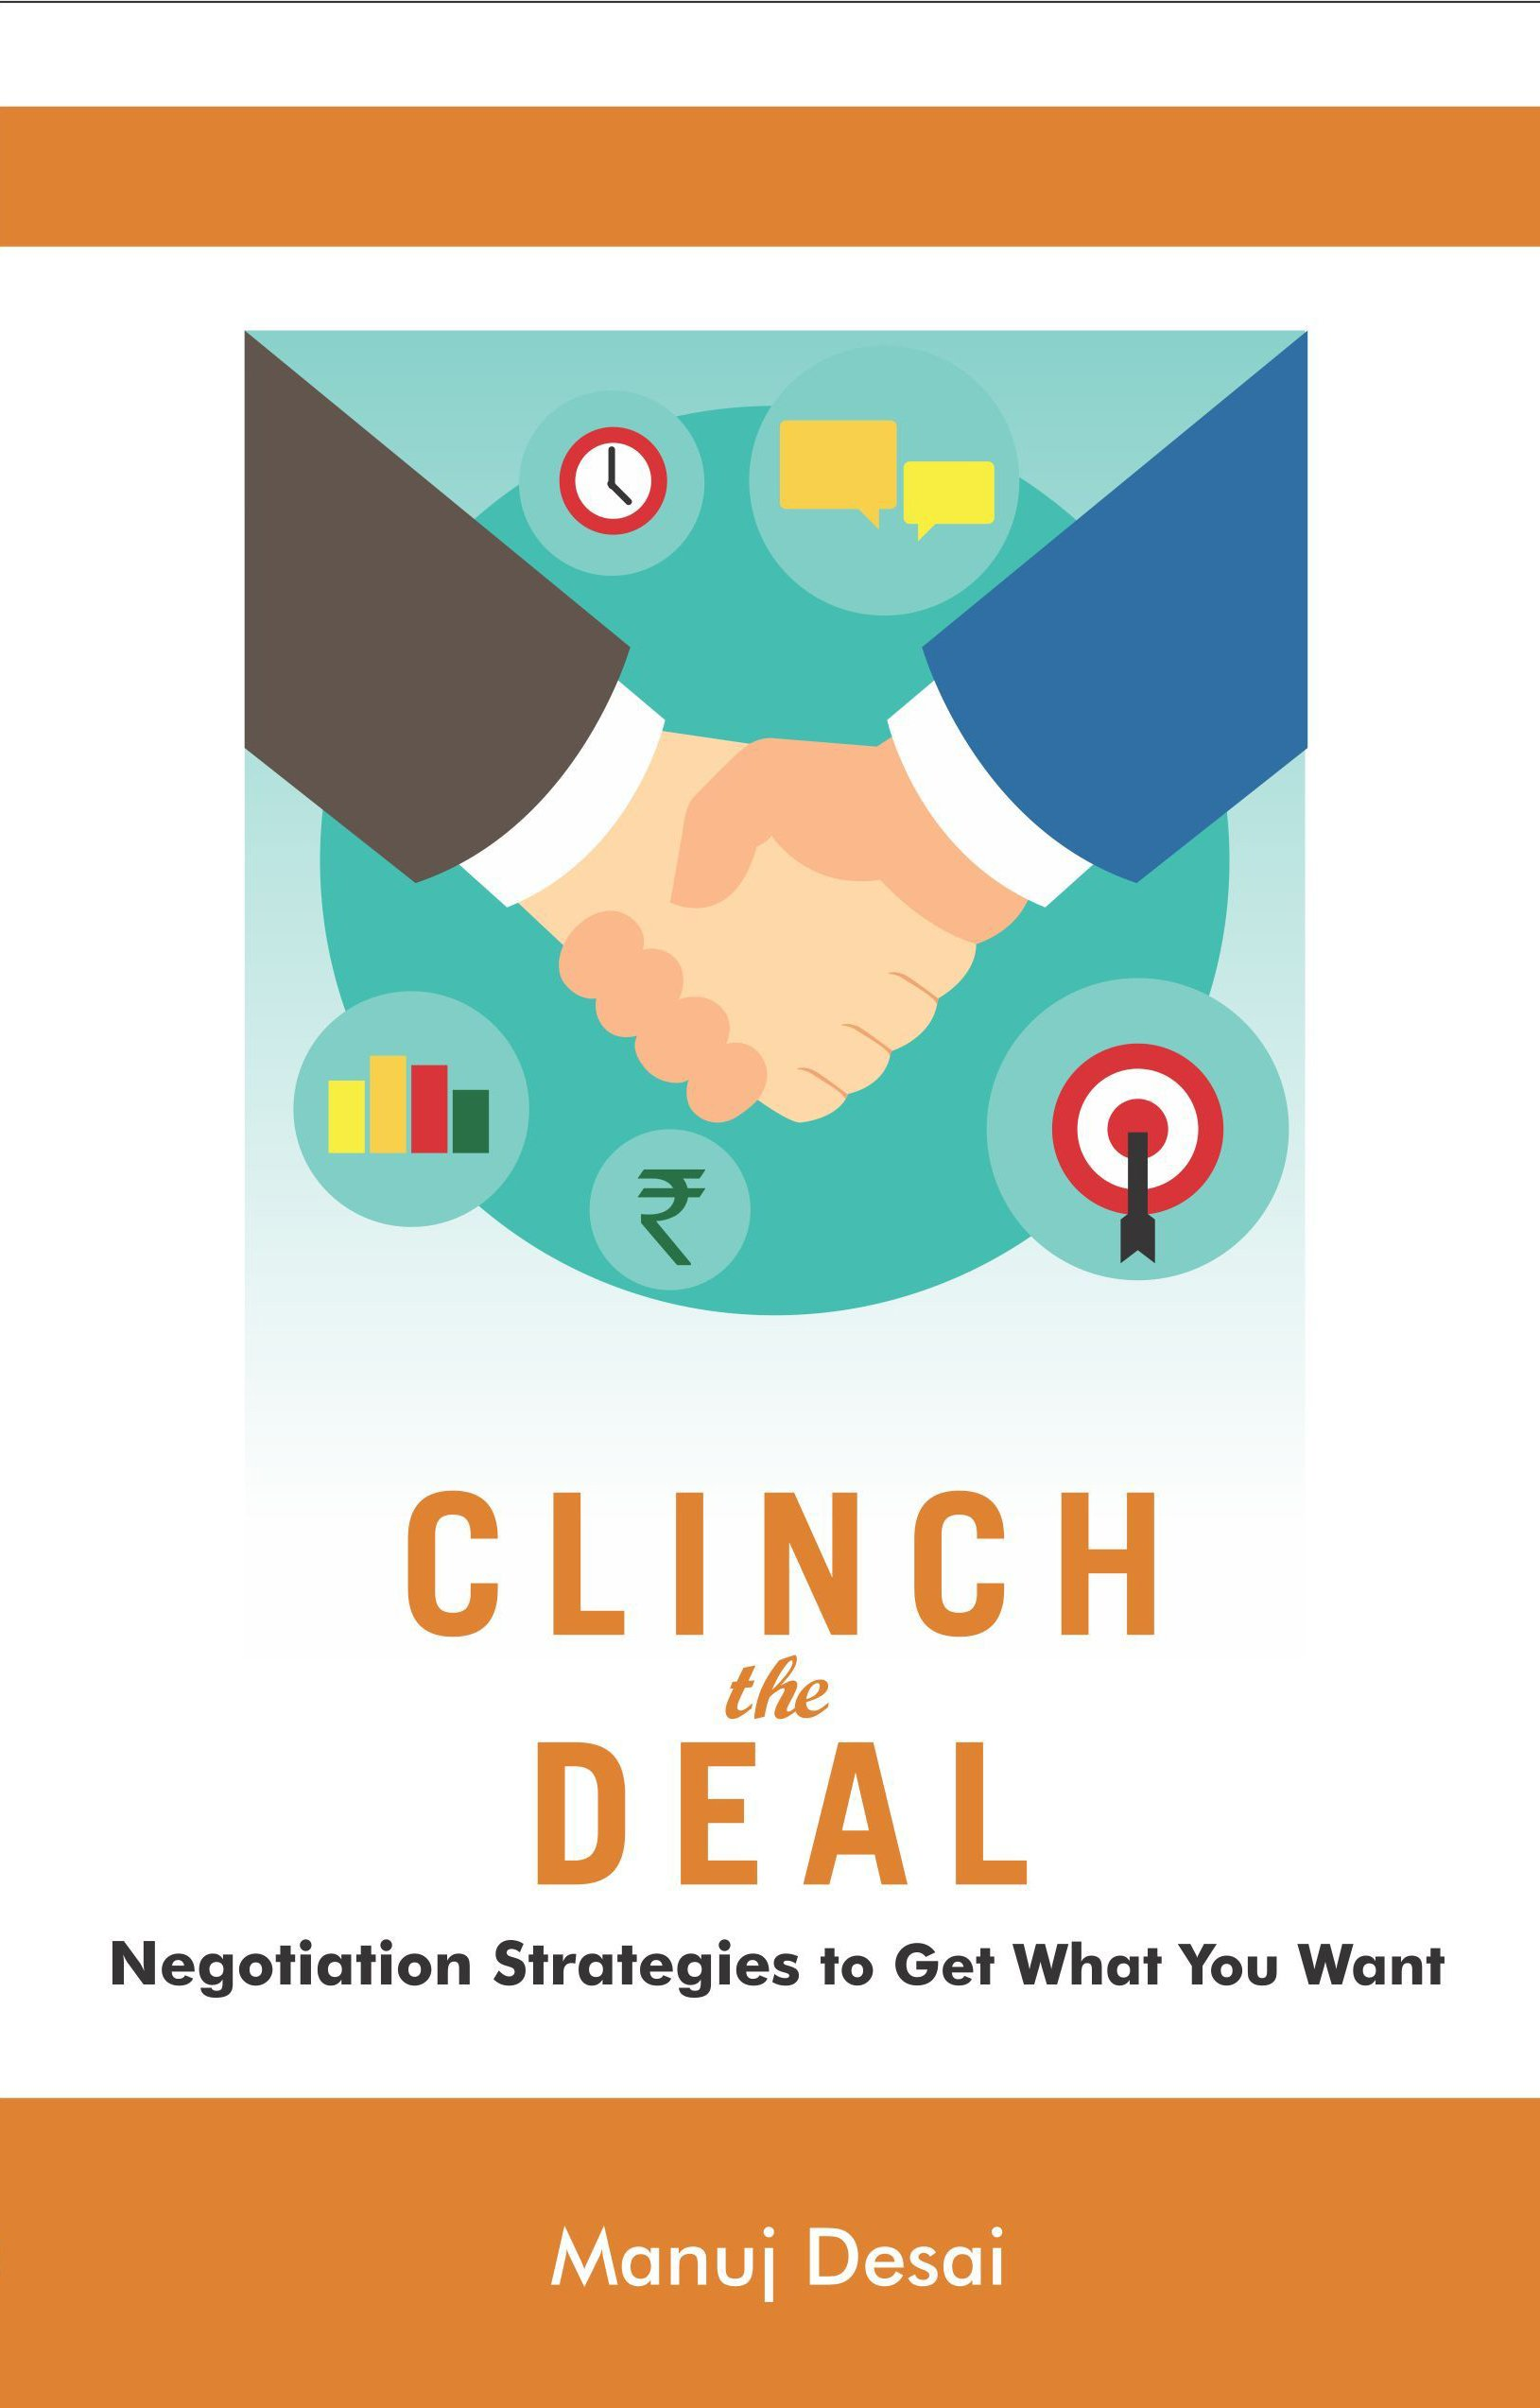 Clinch the Deal: Negotiation Strategies to Get What You Want